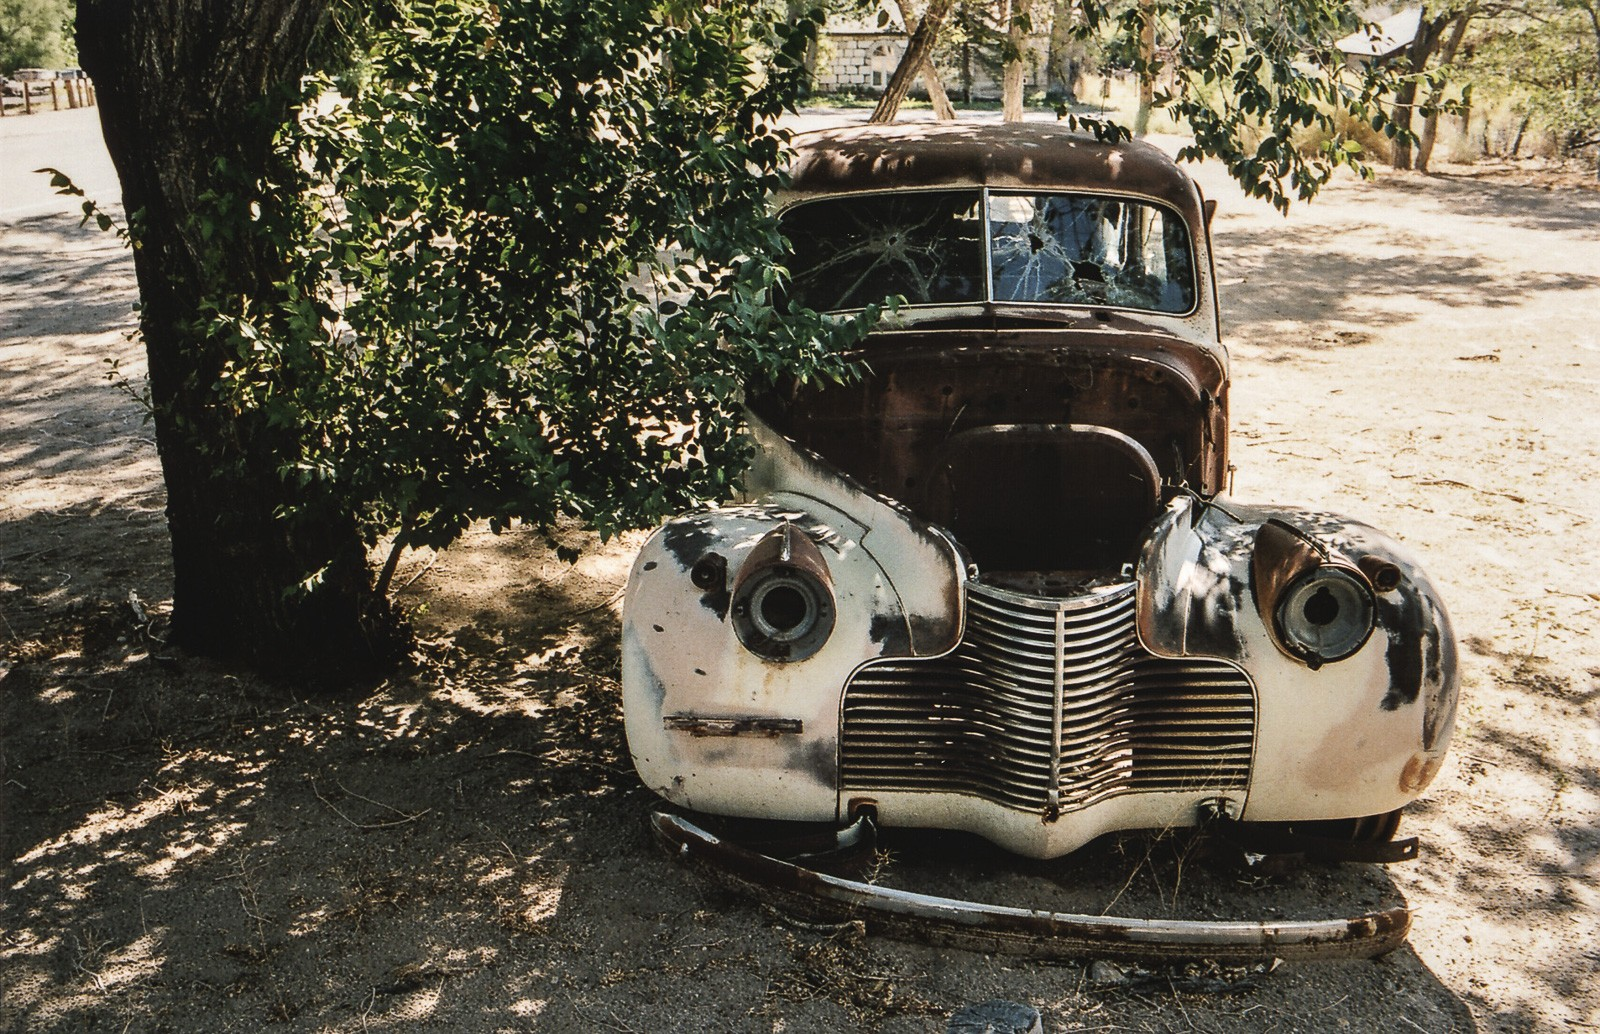 old rusty car with broken glass next to tree